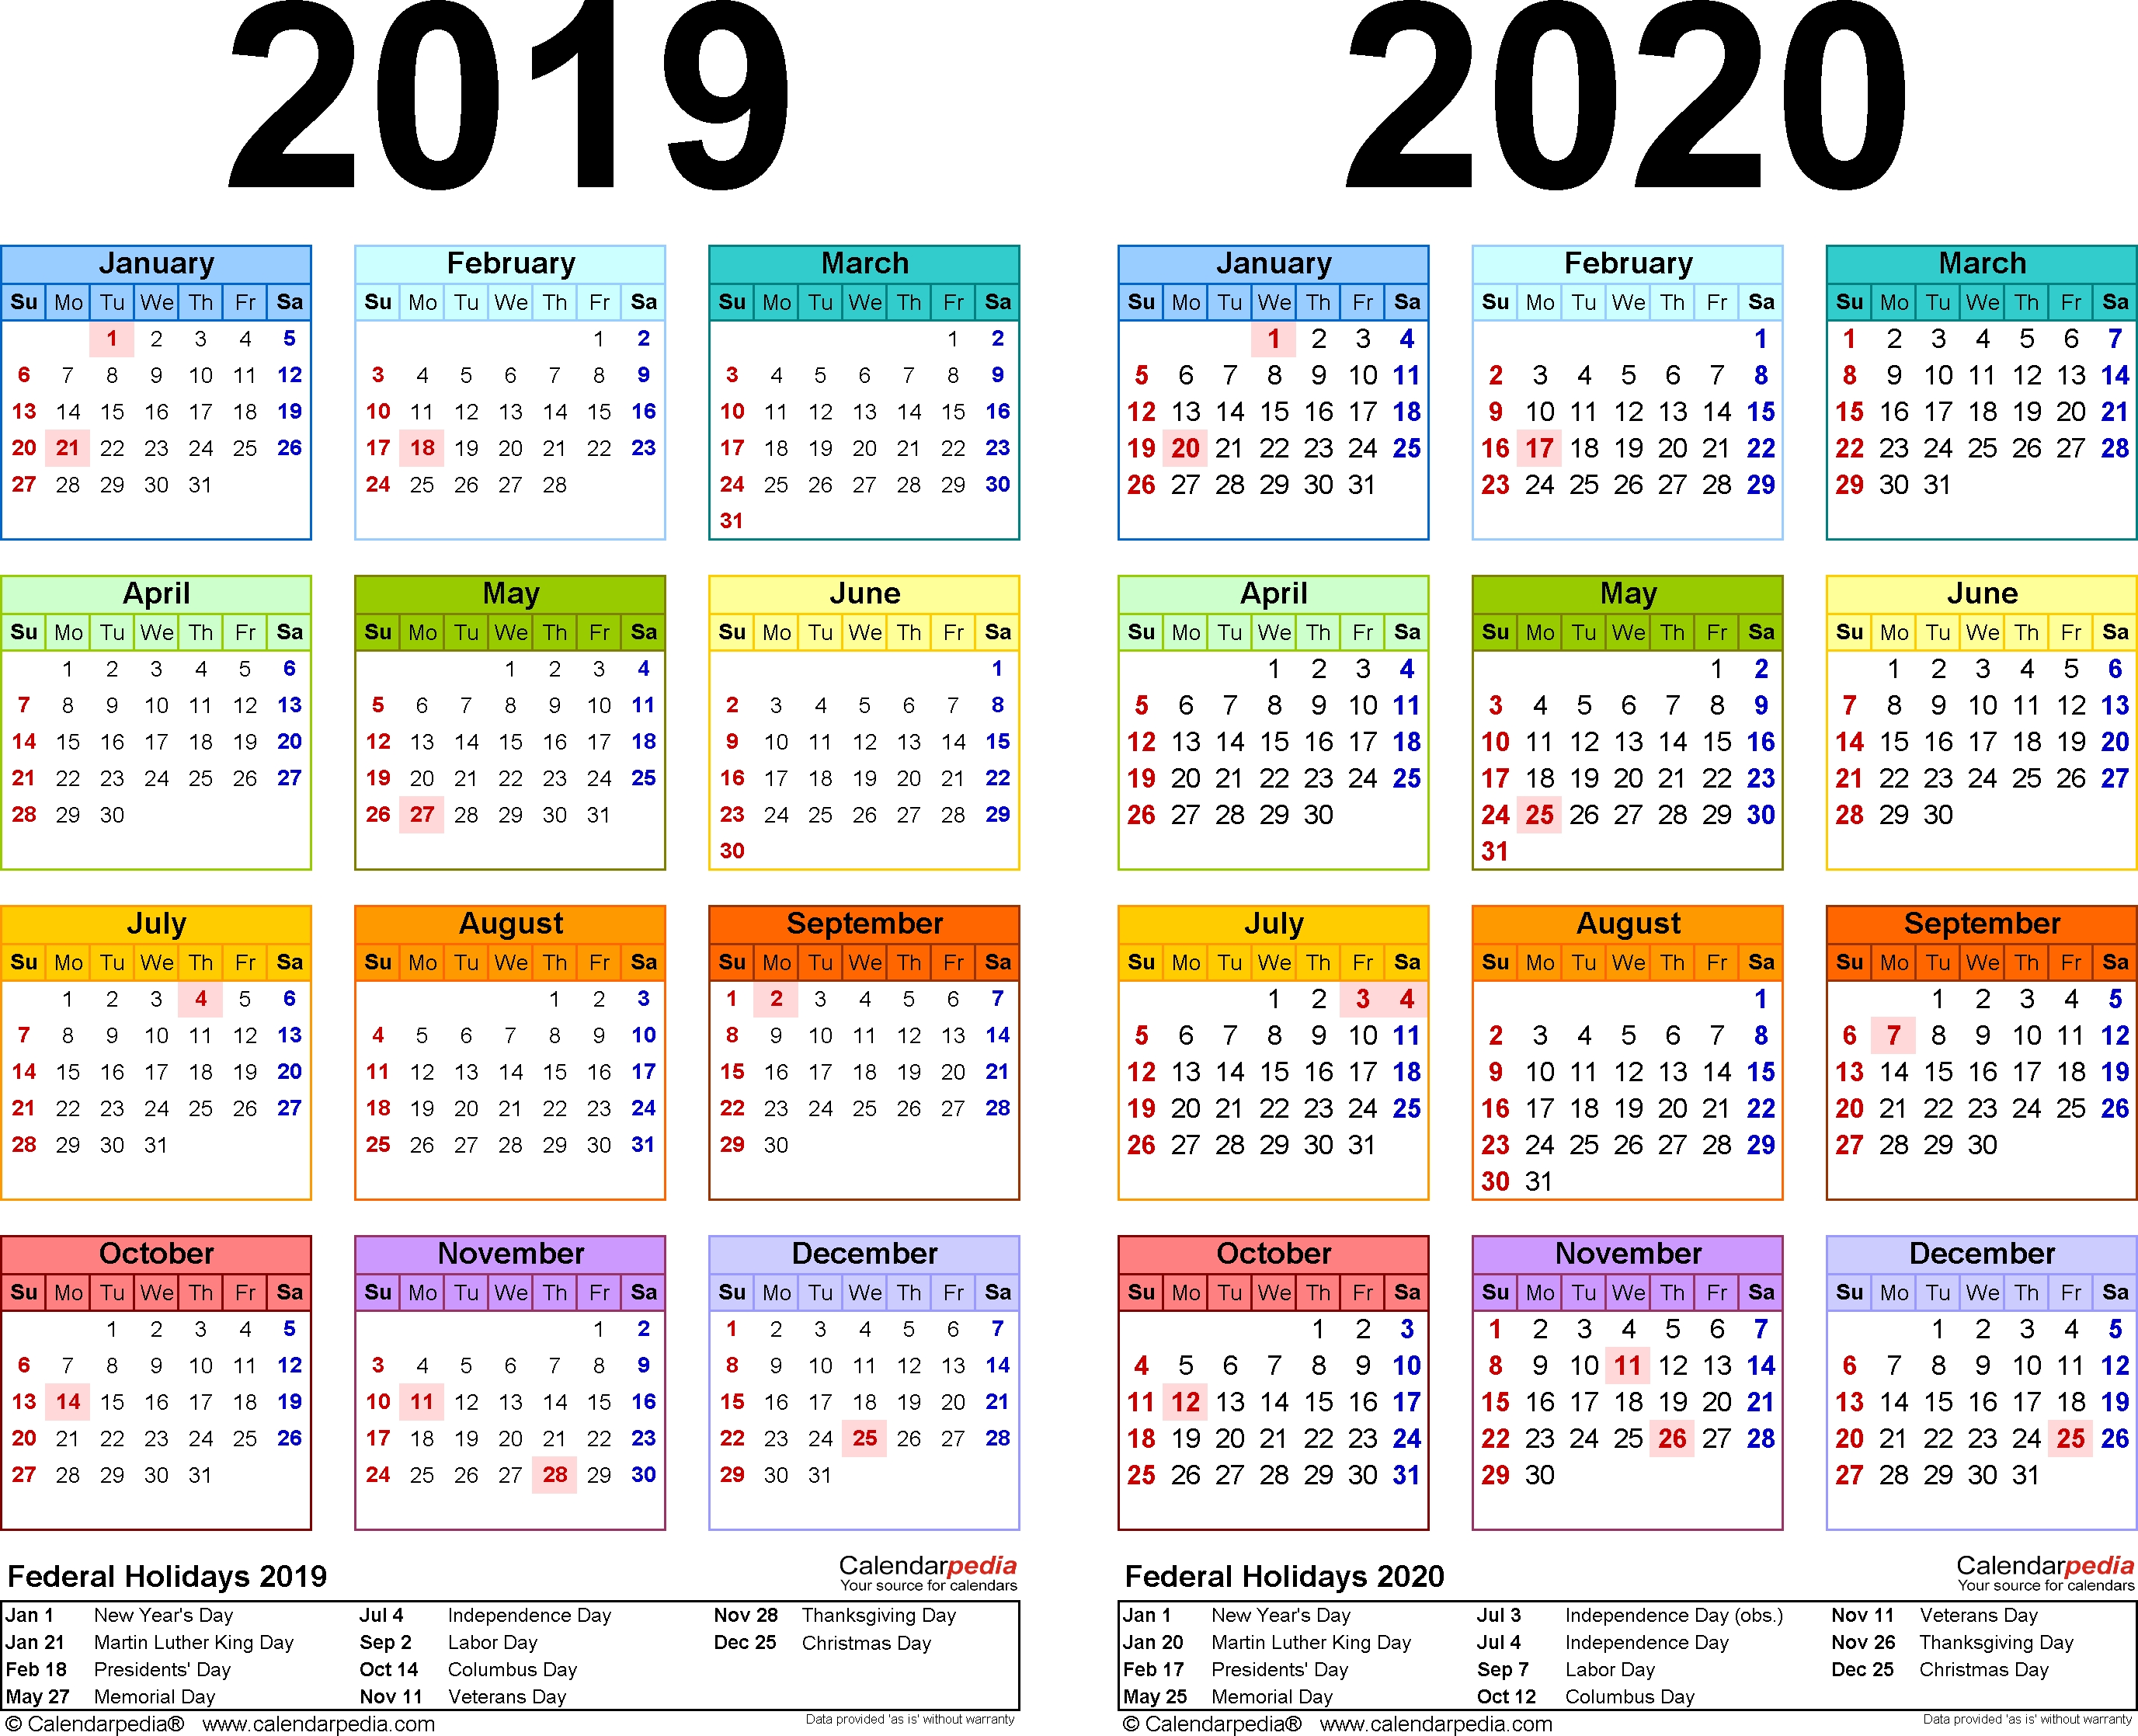 2019-2020 Calendar - Free Printable Two-Year Word Calendars within Downloadable 2019-2020 Calendar In Word